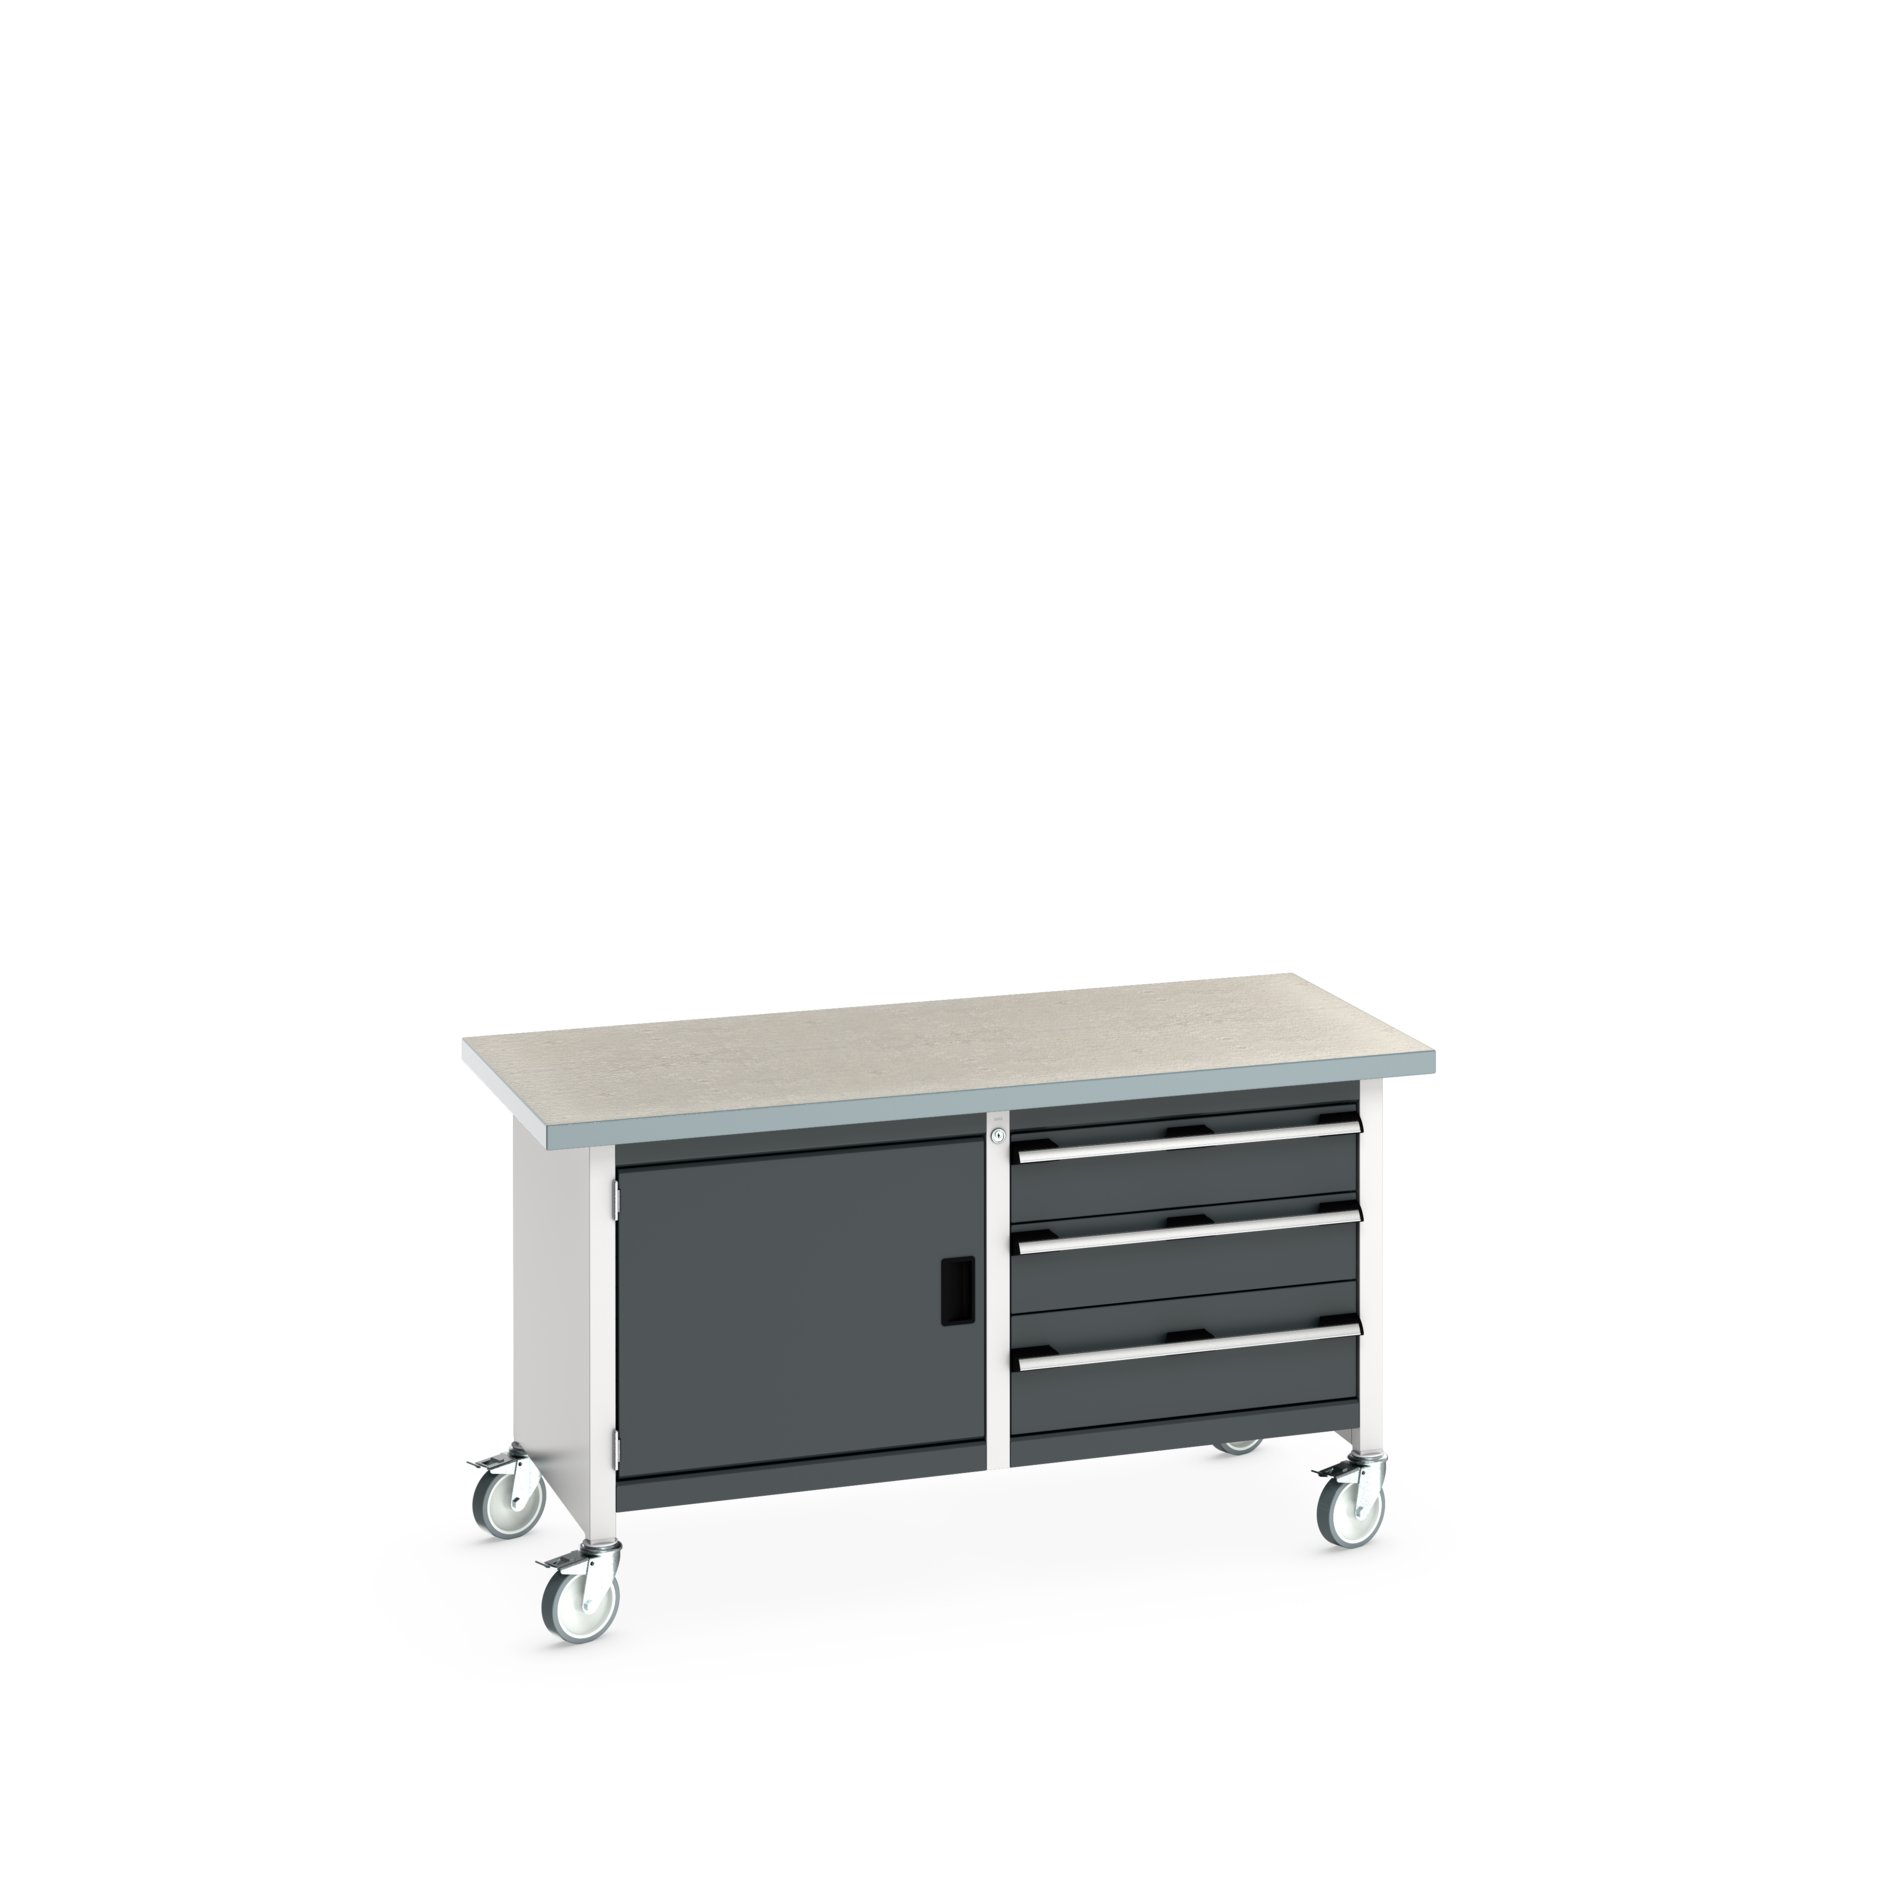 Bott Cubio Mobile Storage Bench With Full Cupboard / 3 Drawer Cabinet